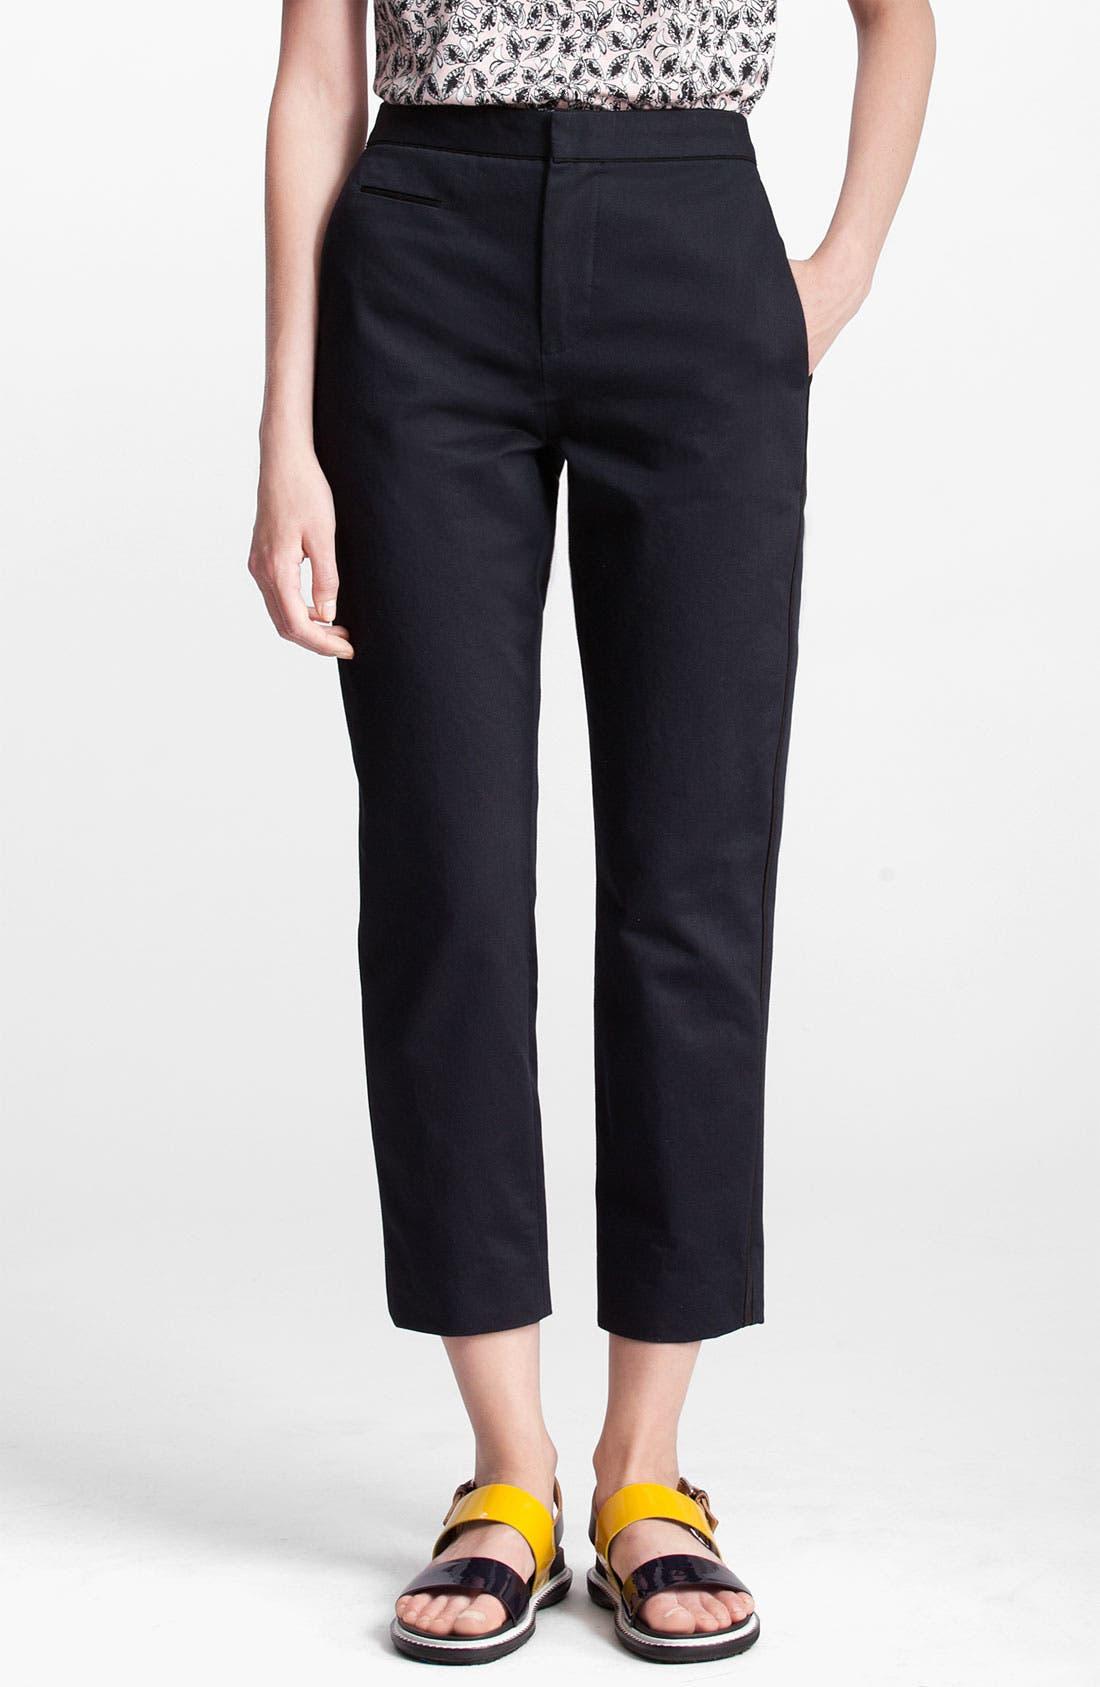 Alternate Image 1 Selected - Marni Edition Tuxedo Trim Crop Pants